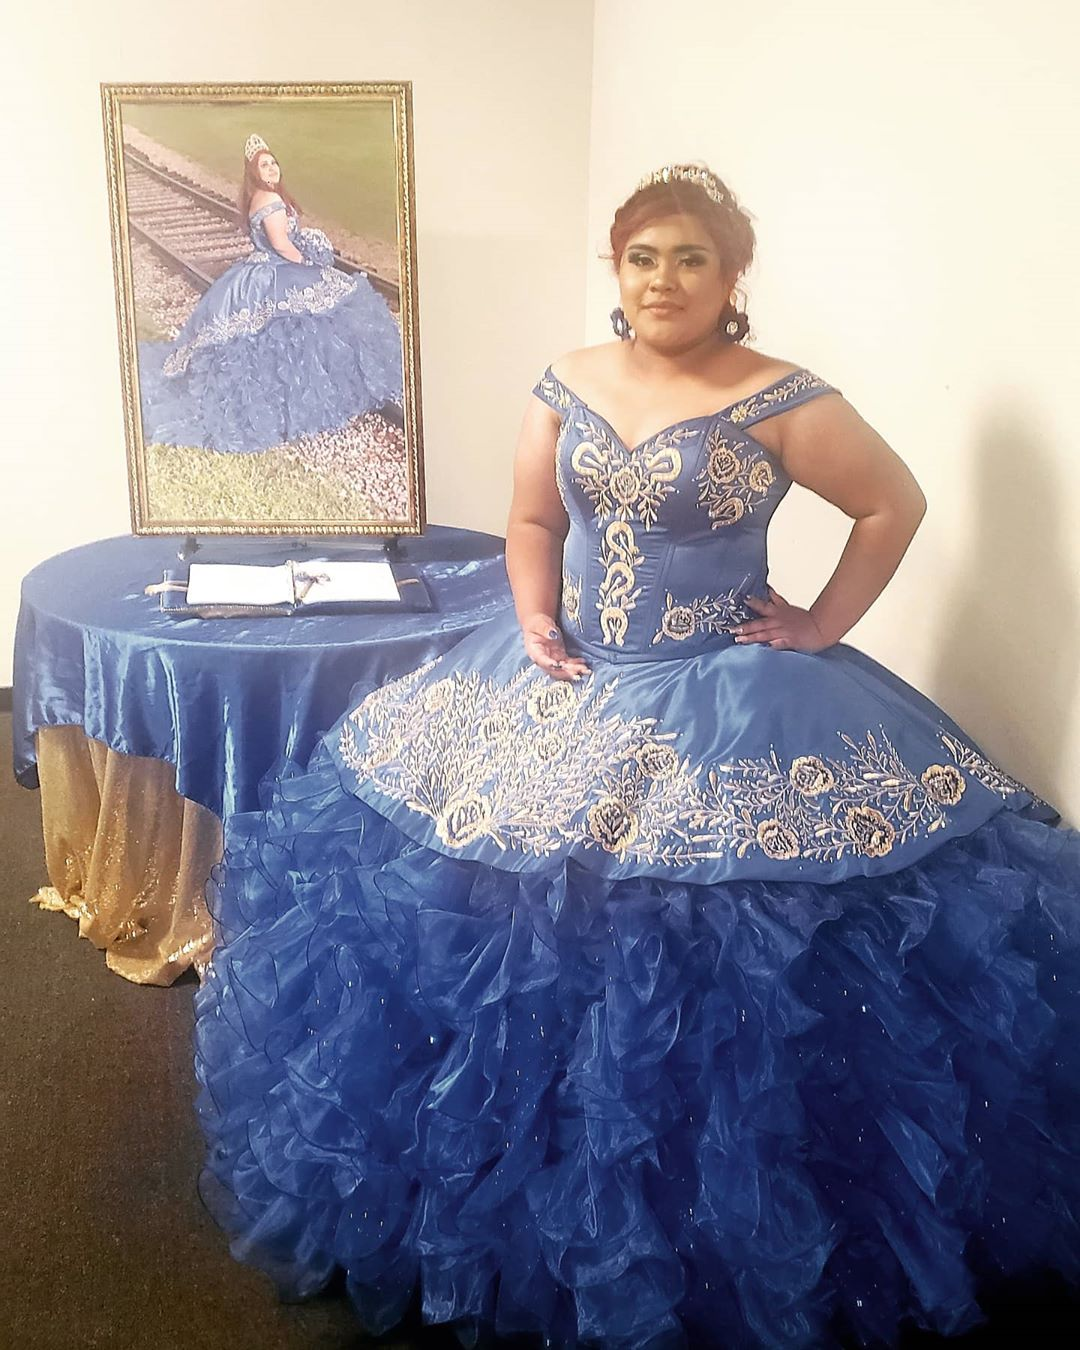 custom made quinceanera dress houston tx,ready to ship quinceanera dress plus size,cheap plus size quinceanera dress,royal blue quinceanera dress with silver,in royal blue quinceanera dress,sweet 16 dress with embroidery,floral embroidery quinceanera dress,